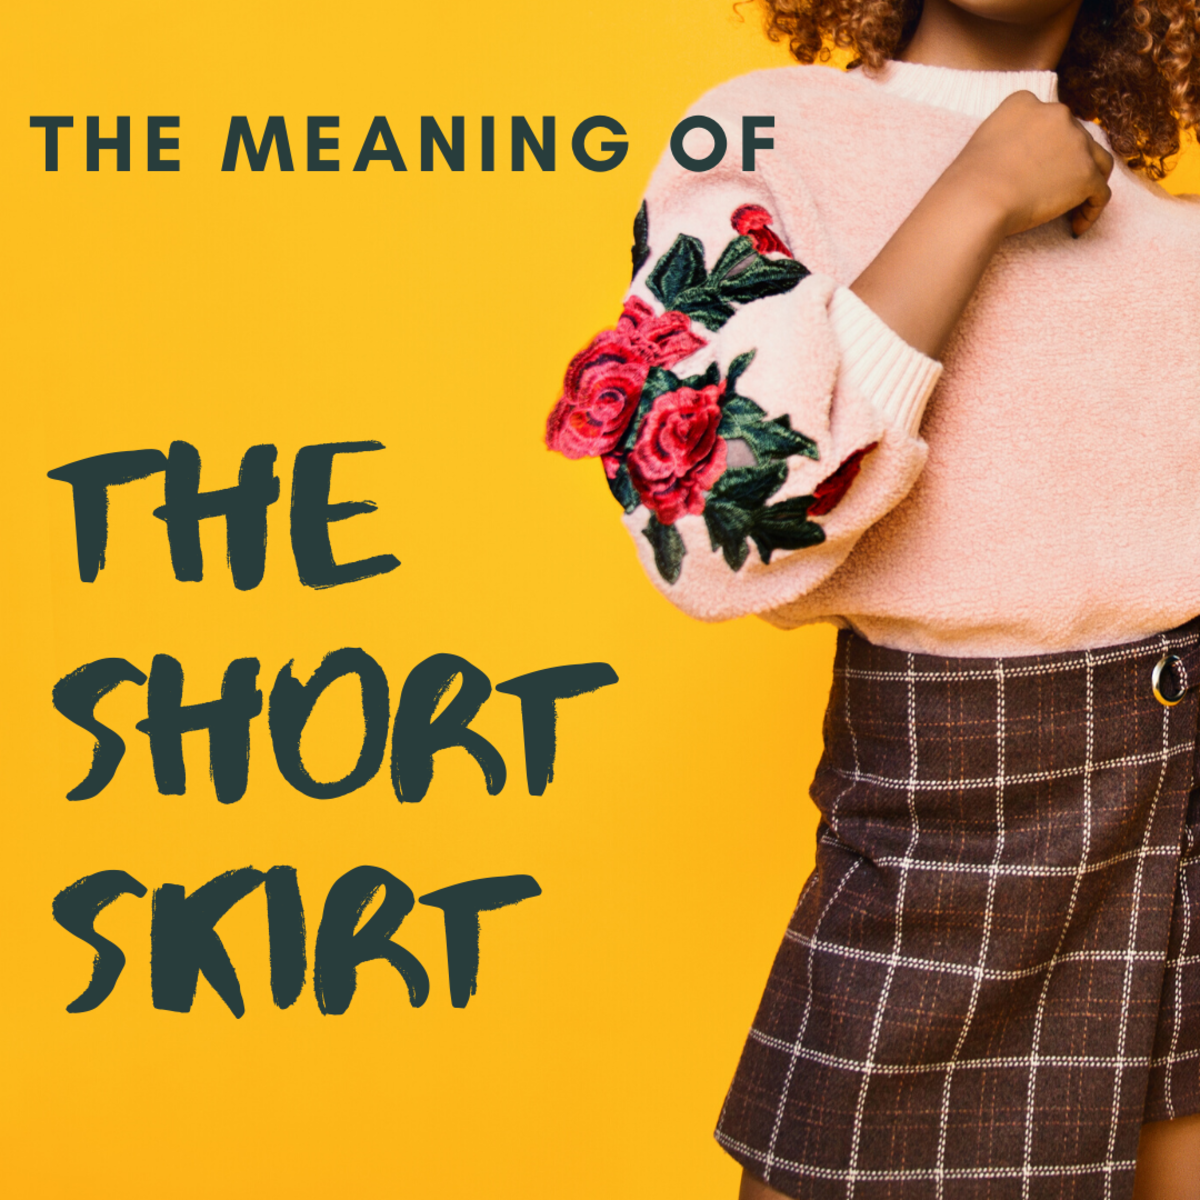 Women in Short Skirts Are [Insert Opinion Here]